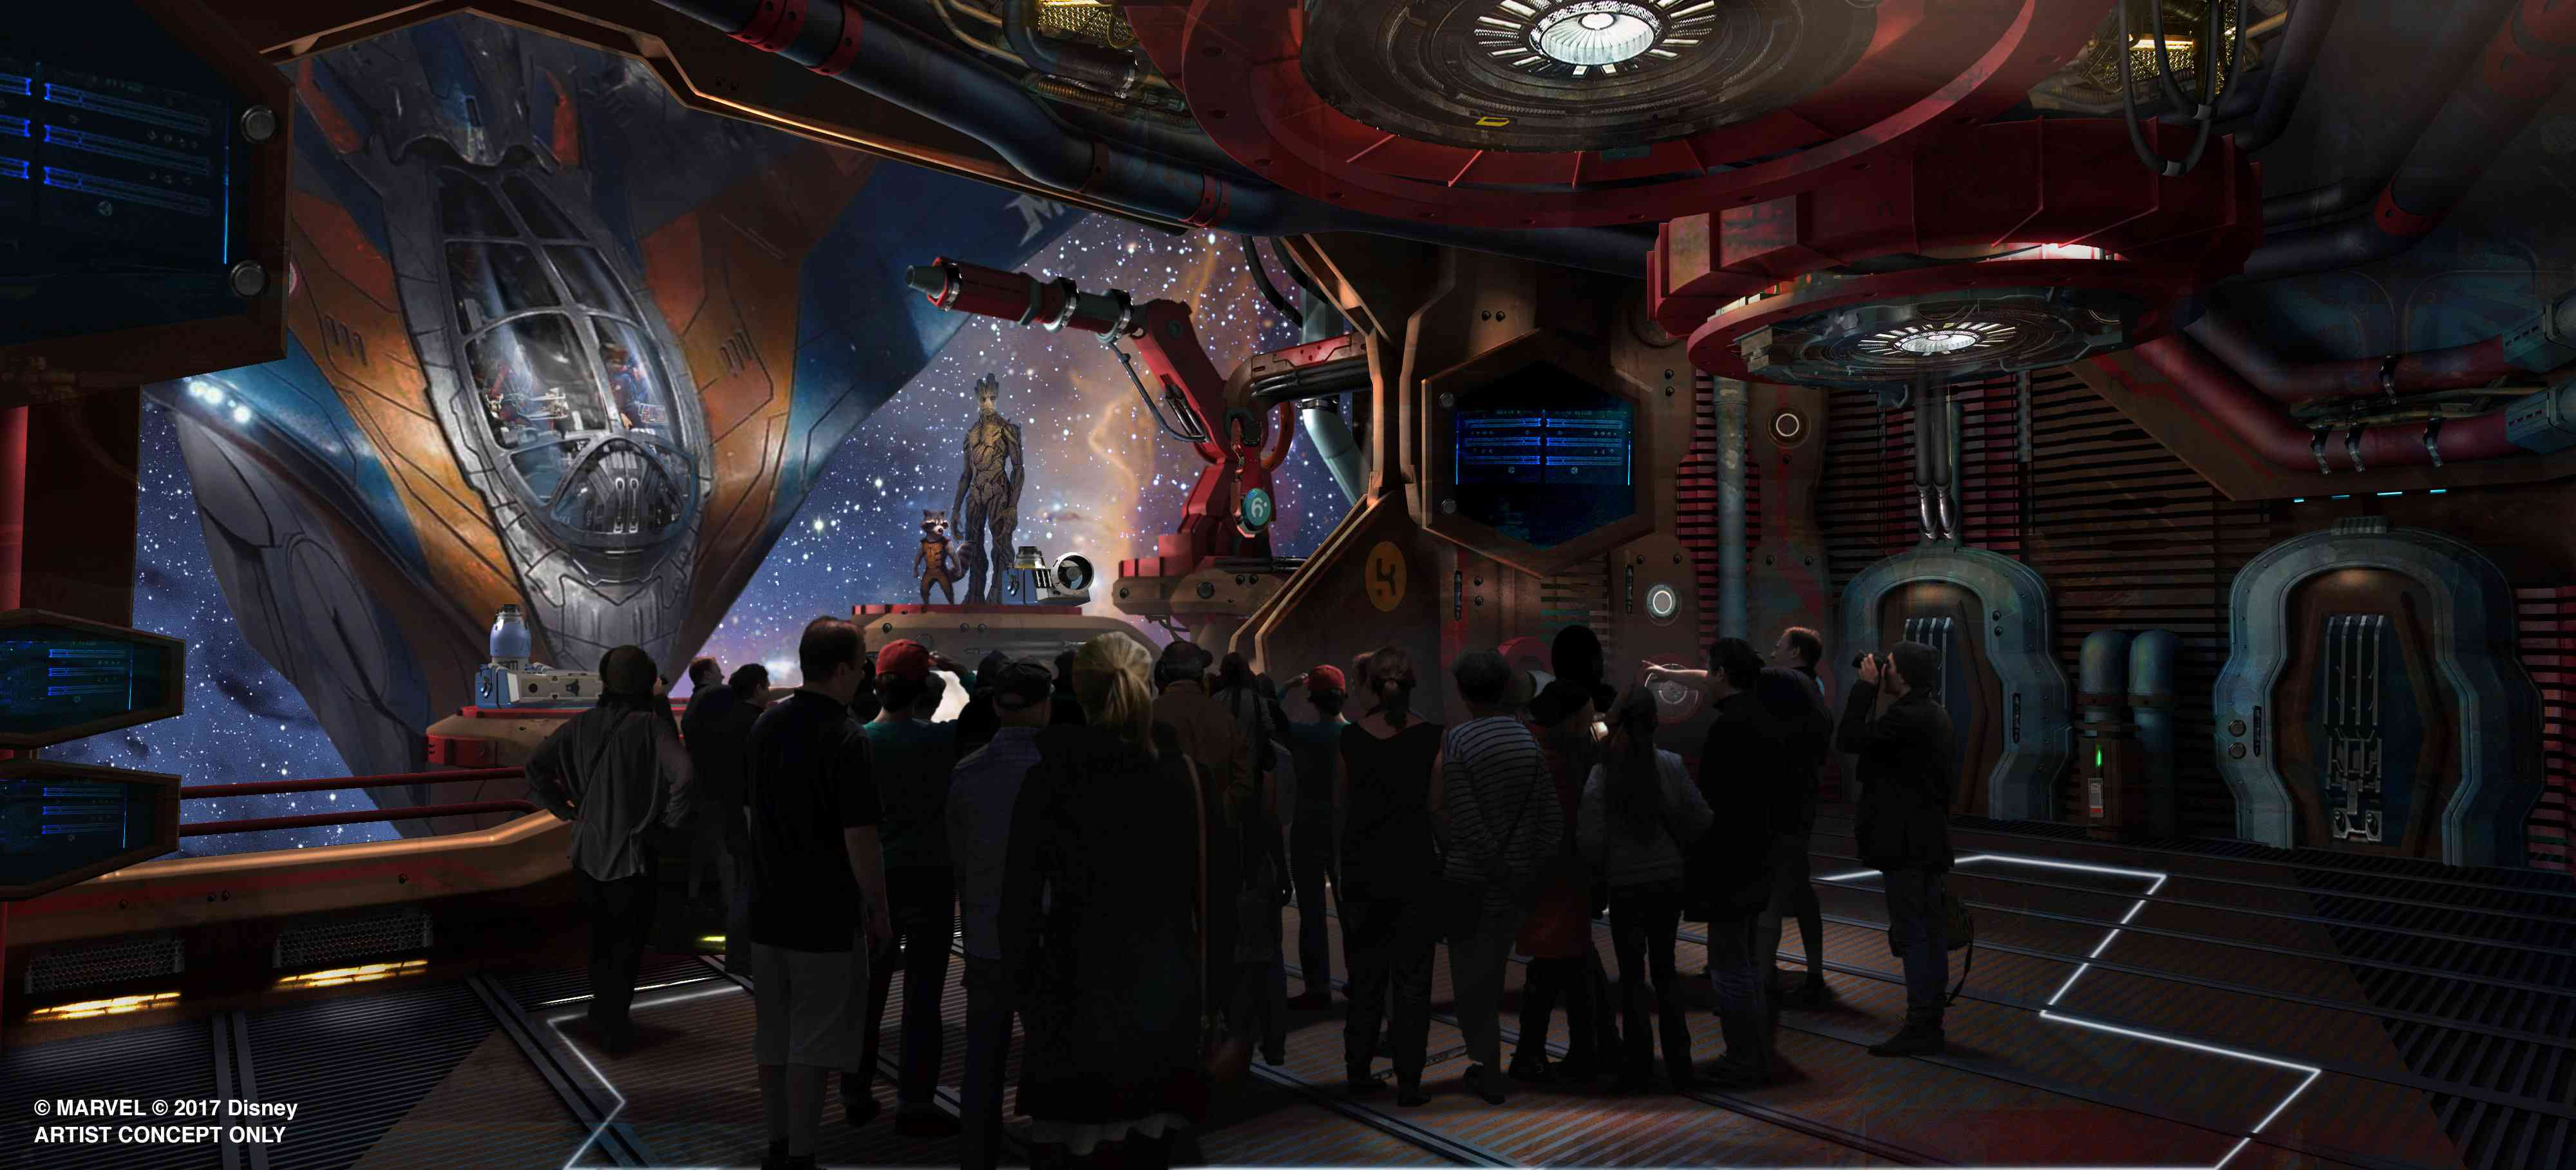 Guardians of the Galaxy: Cosmic Rewind coaster at Epcot